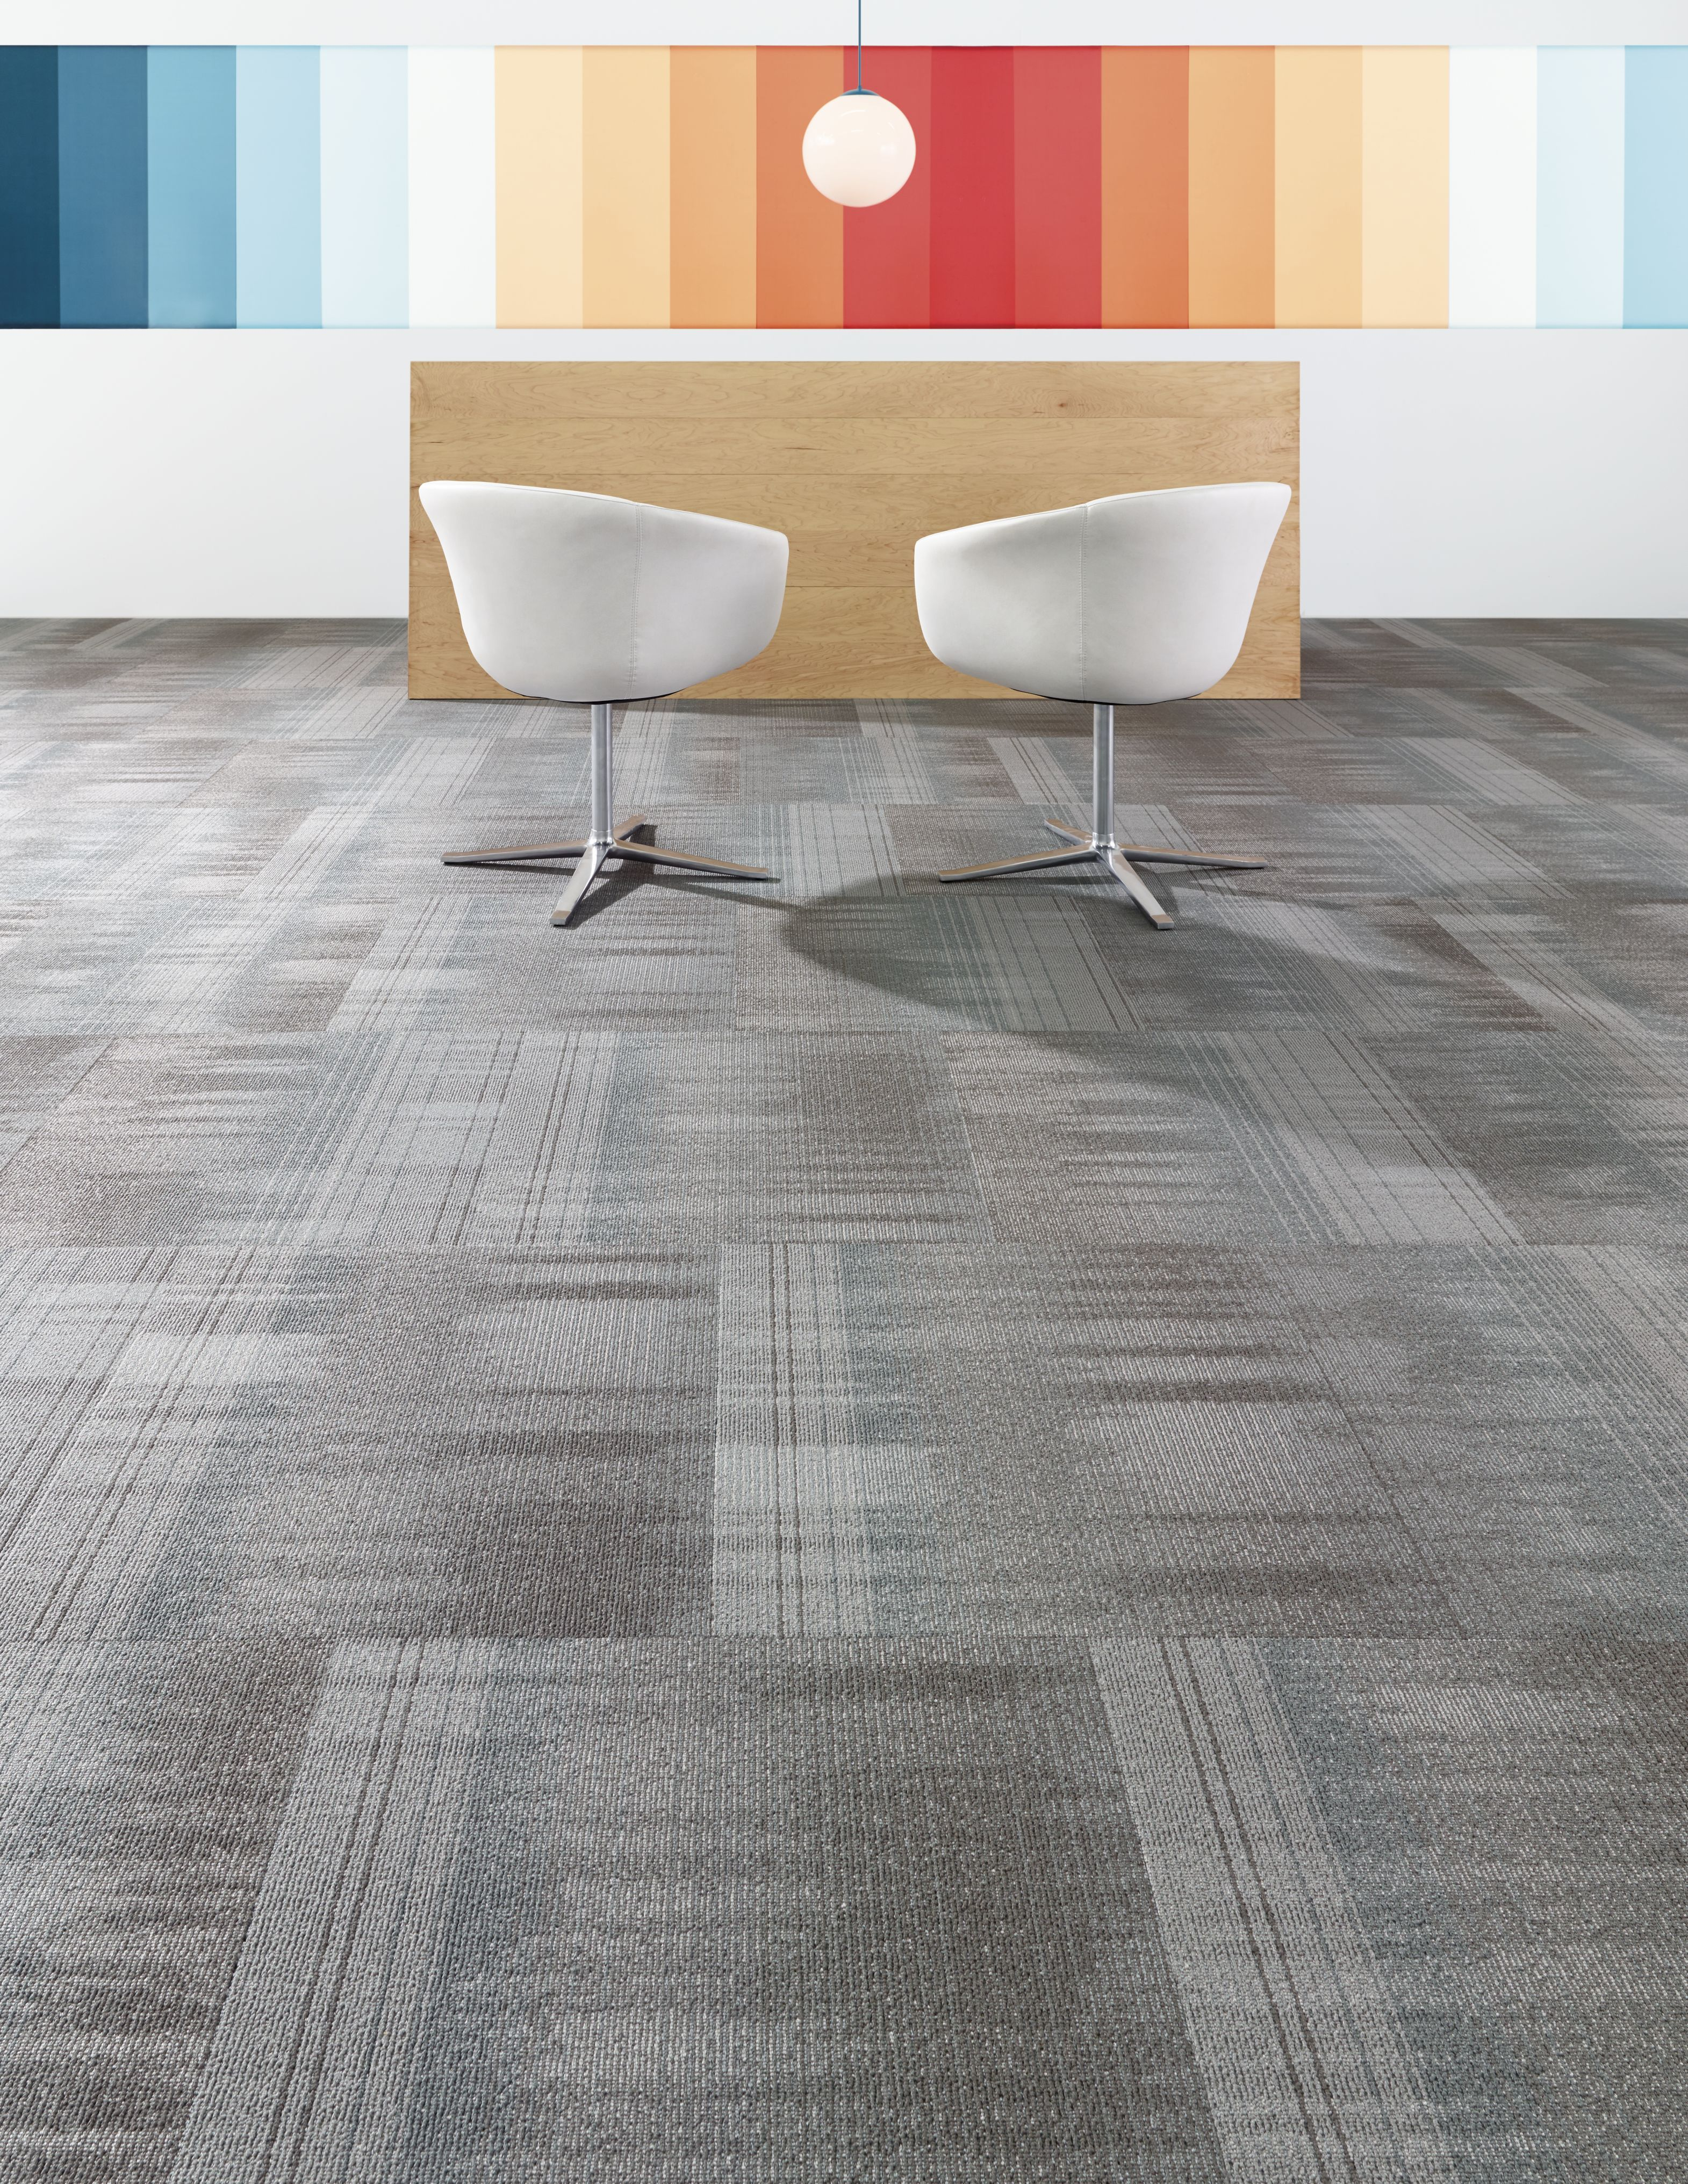 Unwind Carpet Tile Medium Scale Pattern Inspired By The Period